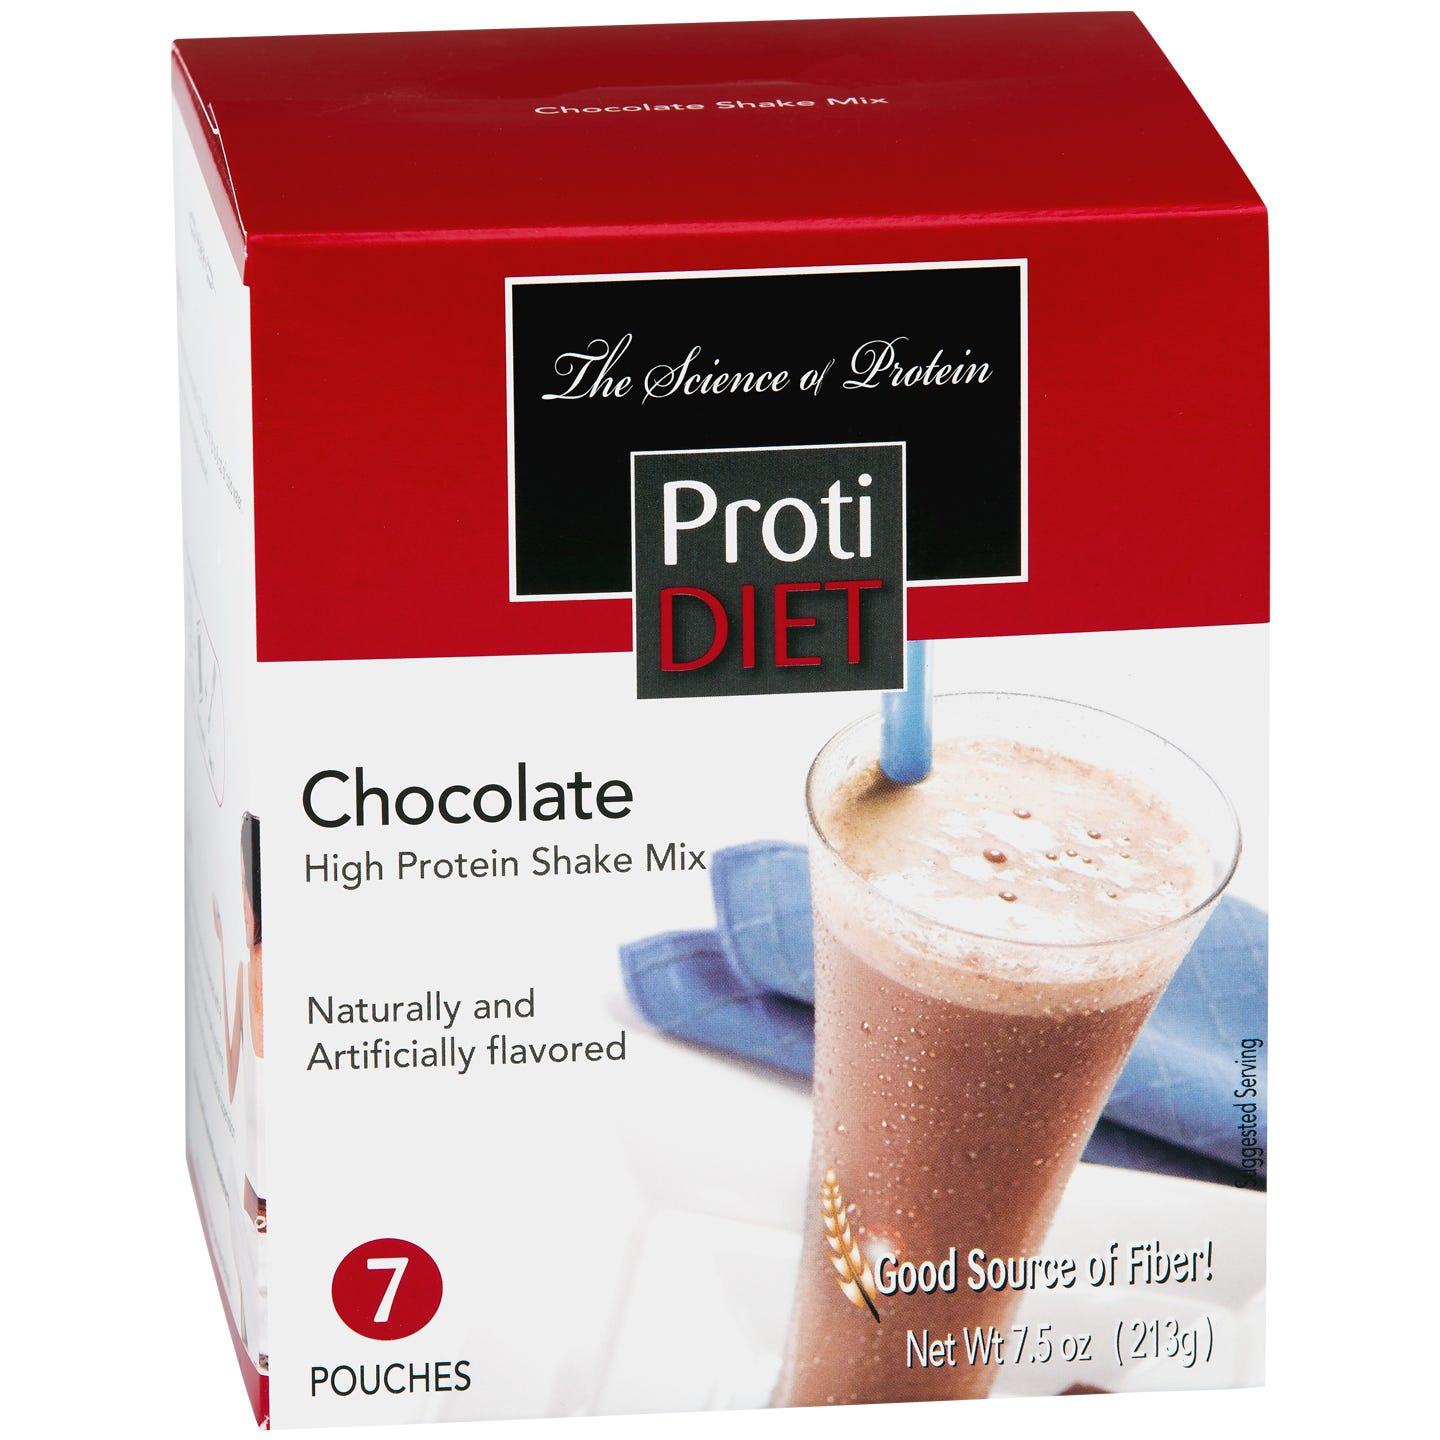 High Protein Shake Mix Chocolate (7 ct) - ProtiDiet - Rapid Diet Weight Loss Products Shop